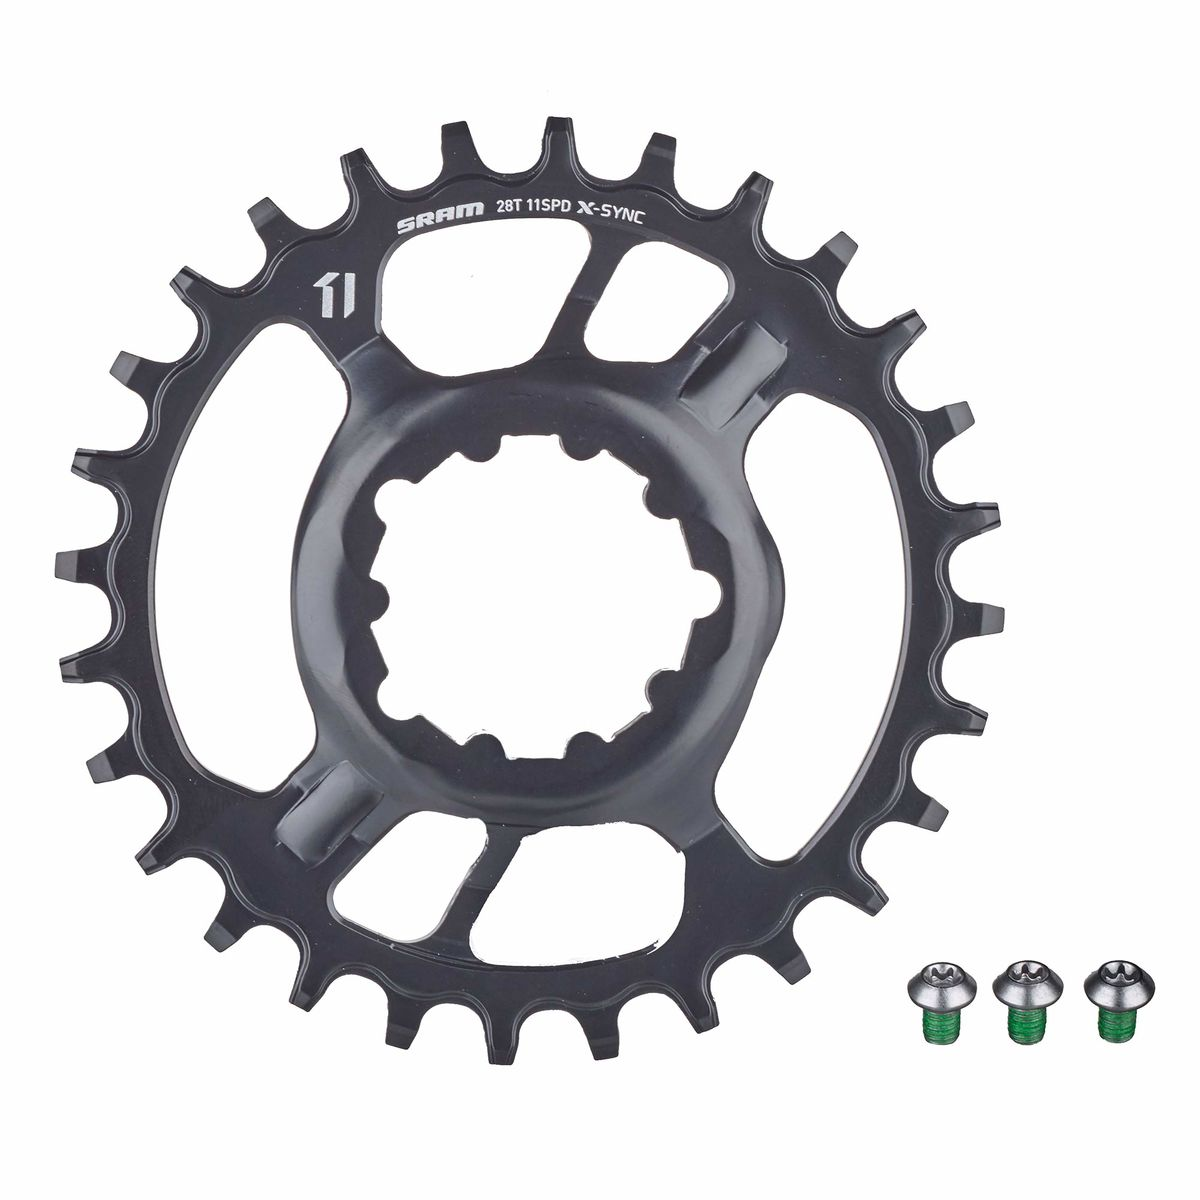 Sram X-Sync 1 x 11 Direct-Mount Kettenblatt